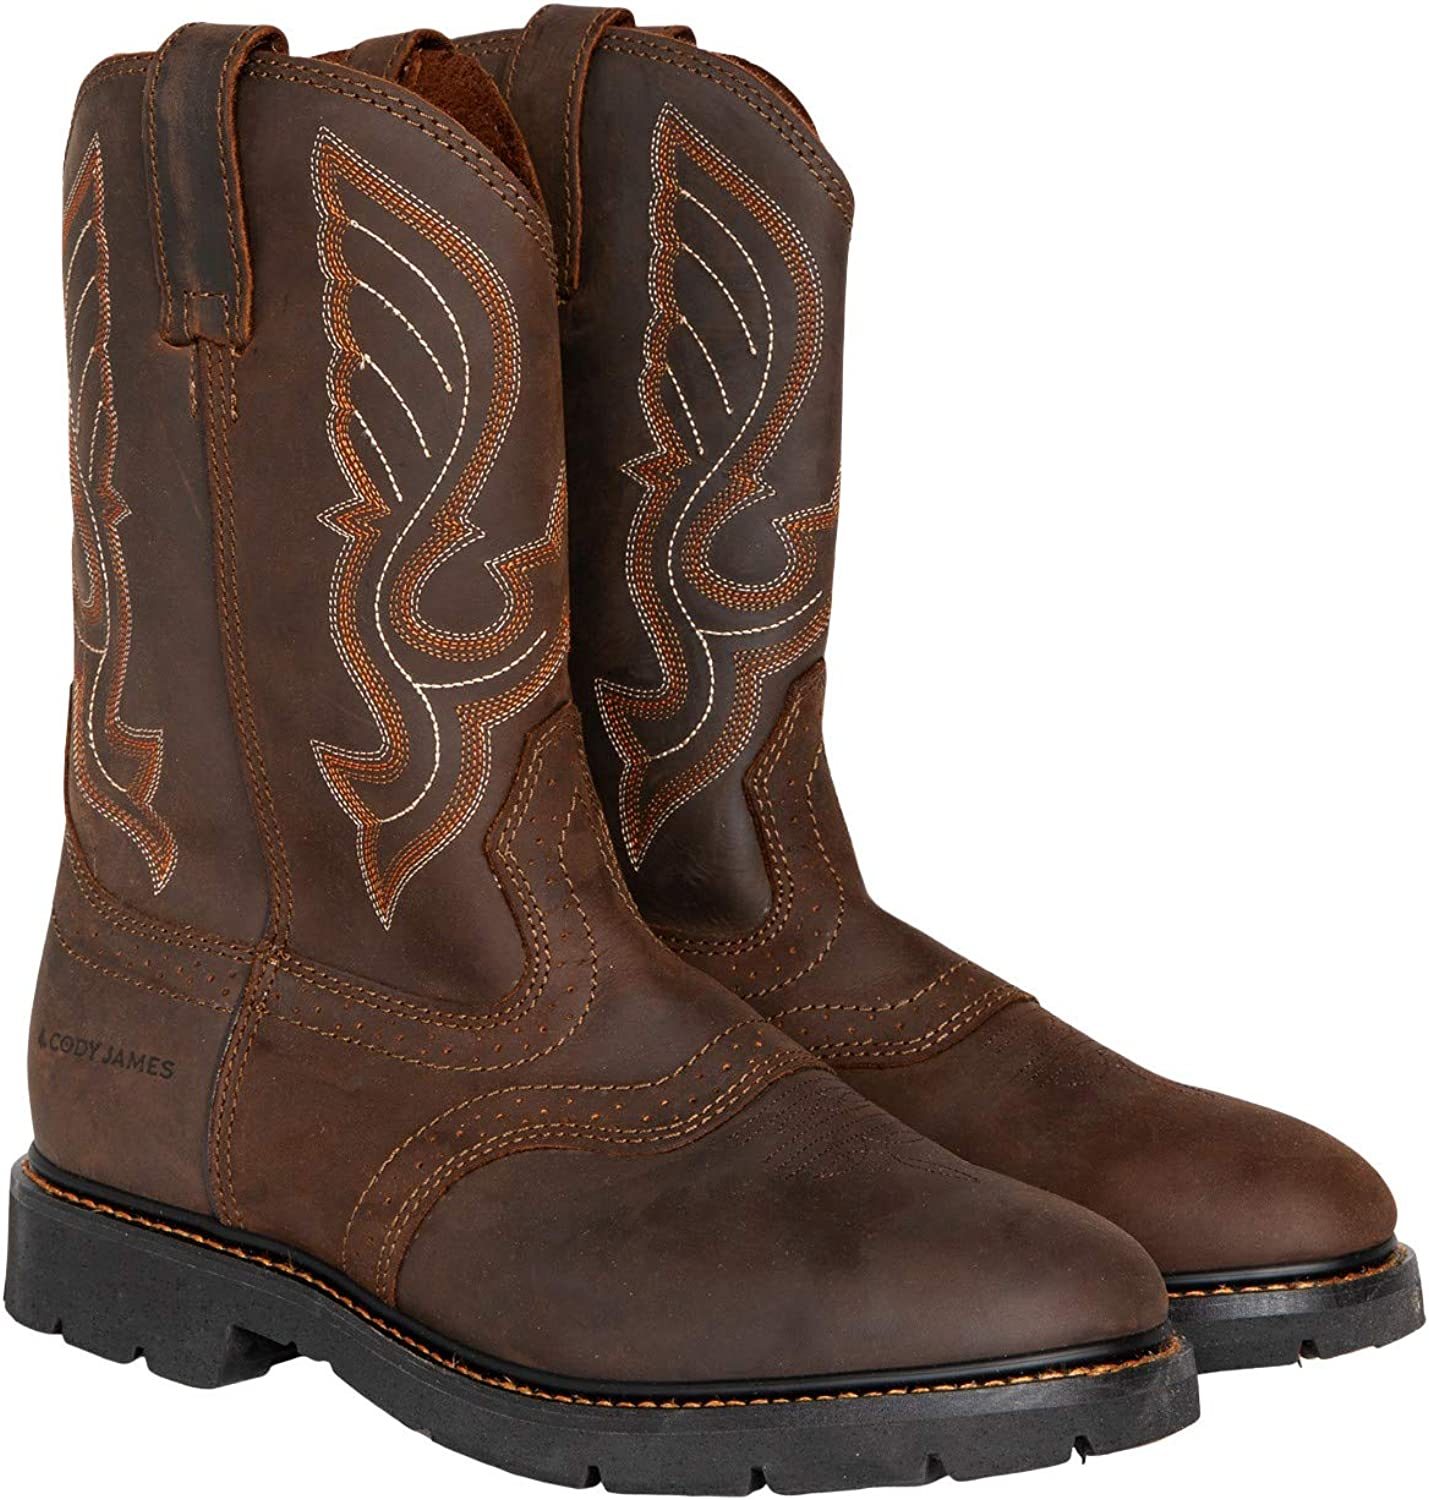 Cody James Men's Western 35% OFF Same day shipping Pull On Boot Round C9rr2 Toe Work -